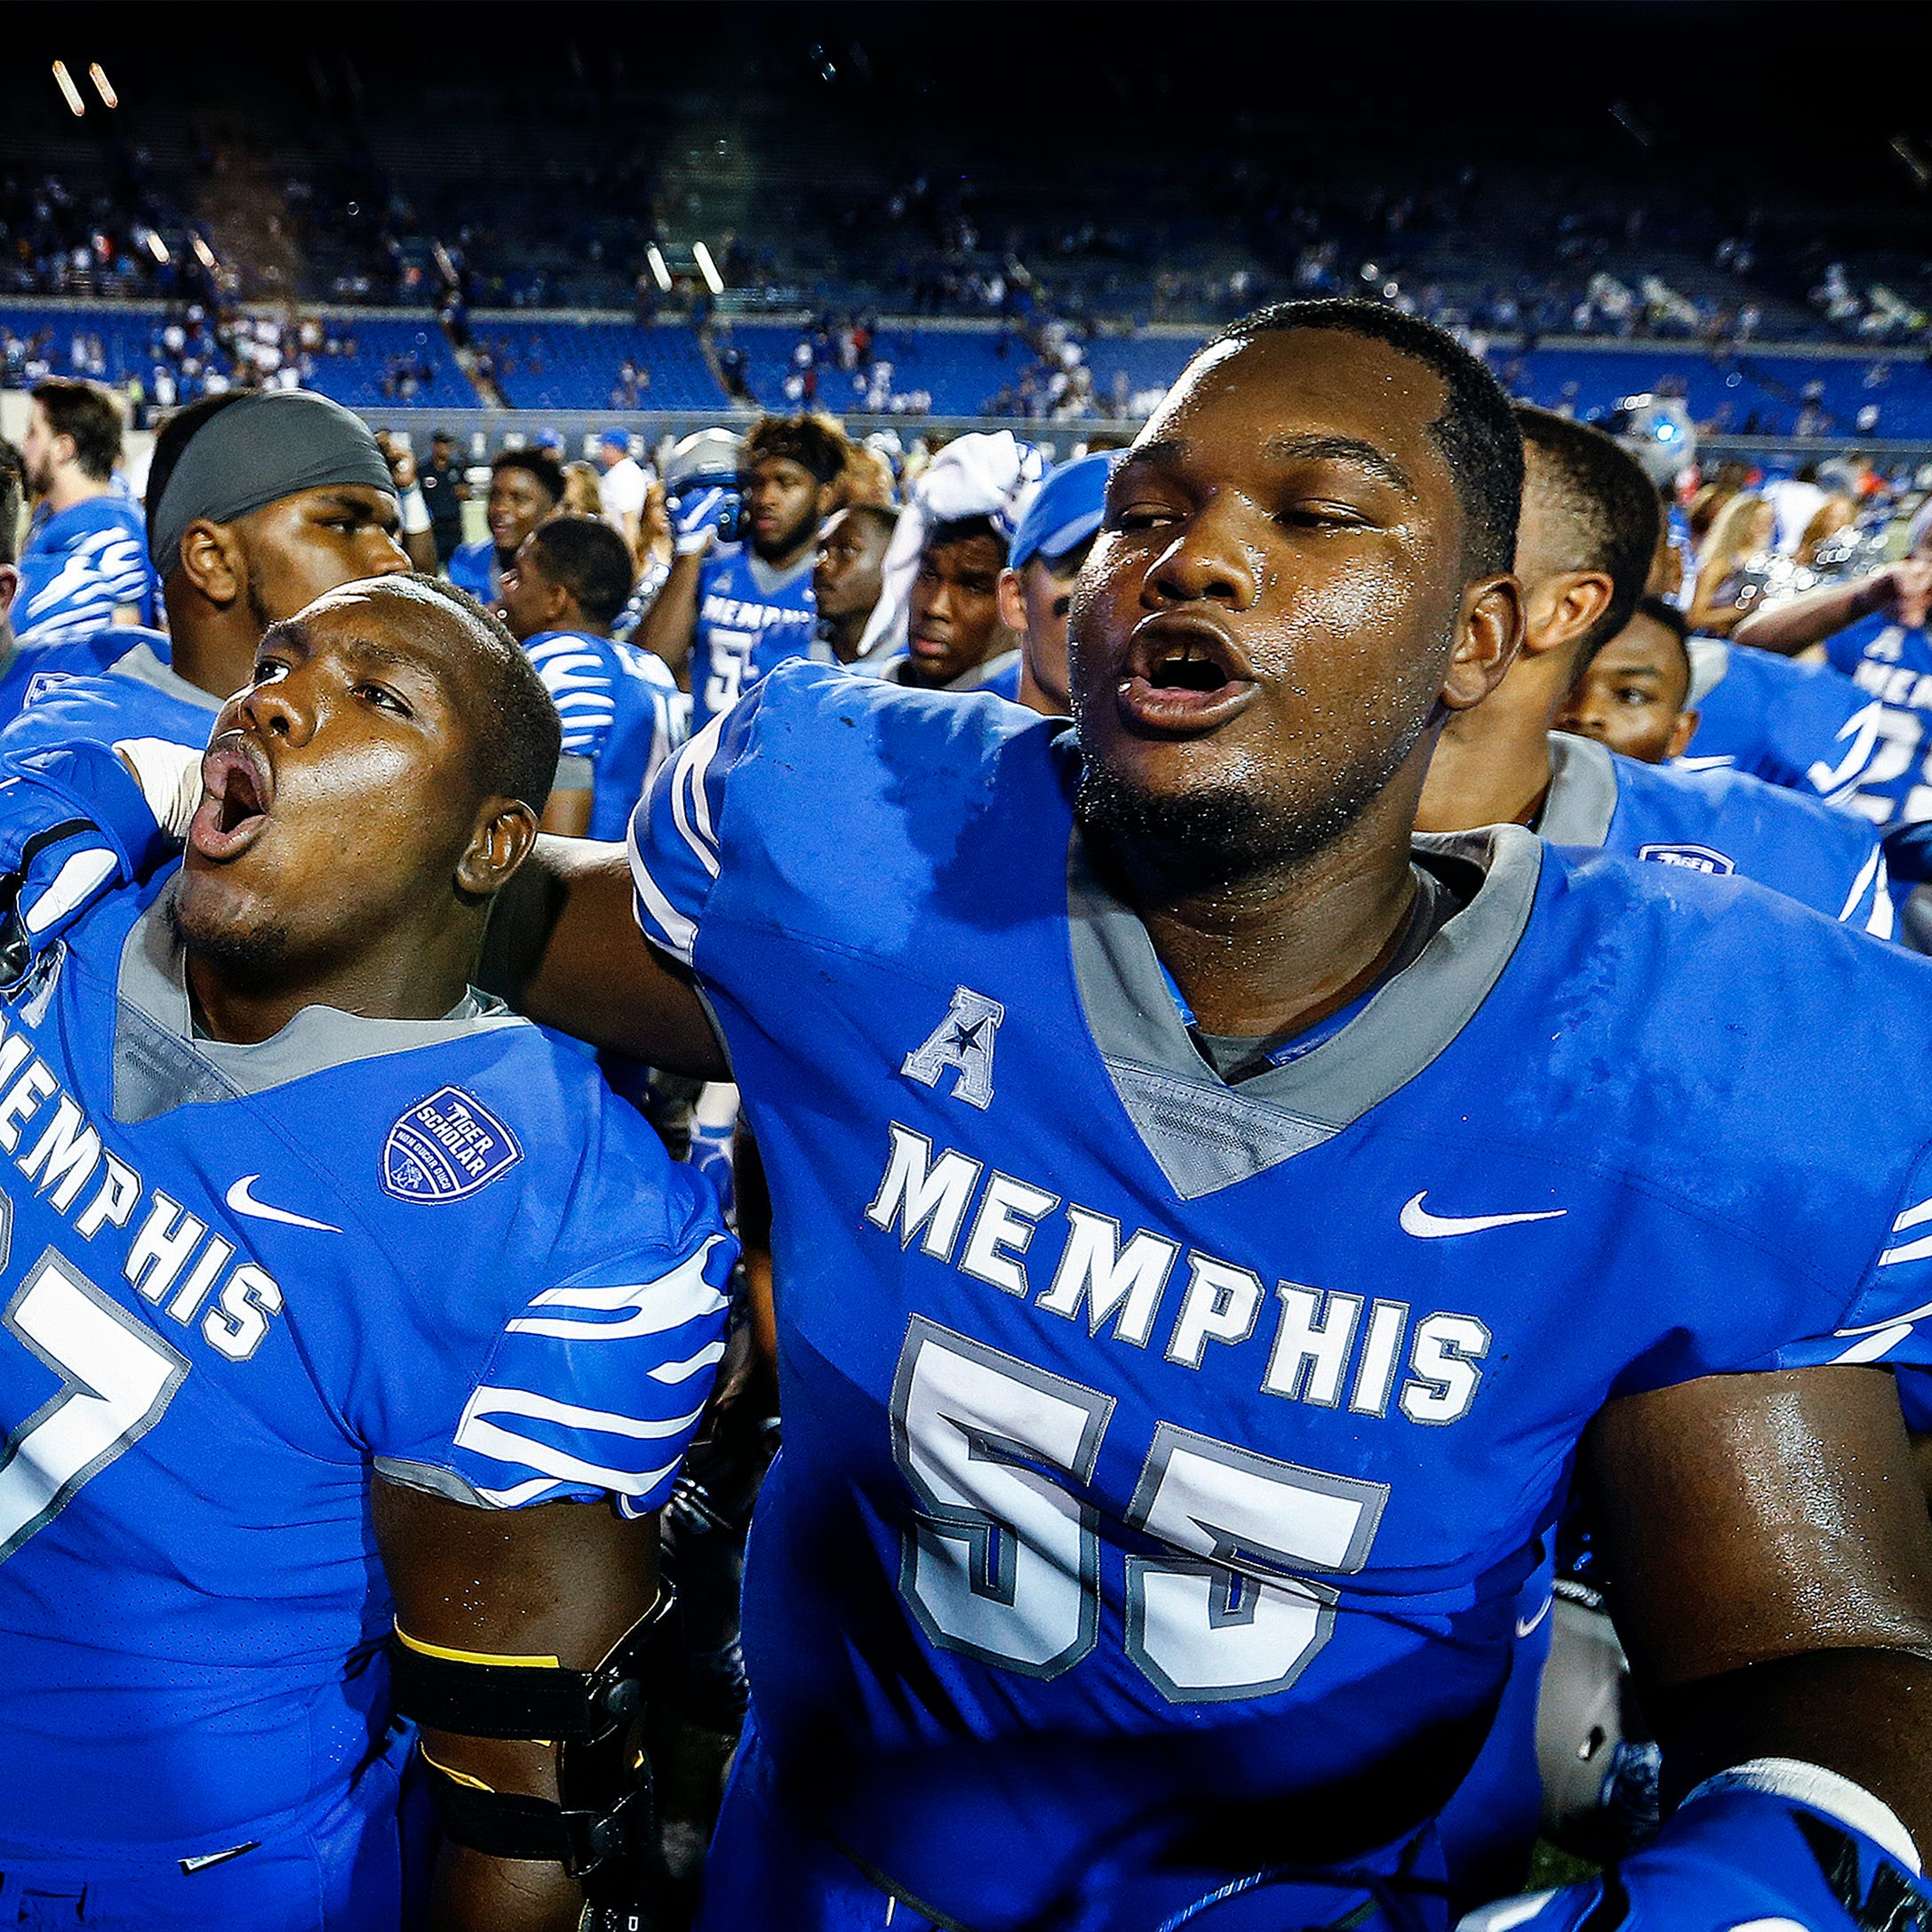 Memphis football: OL Mikhail Hill, LB Anthony Ballard enter transfer portal